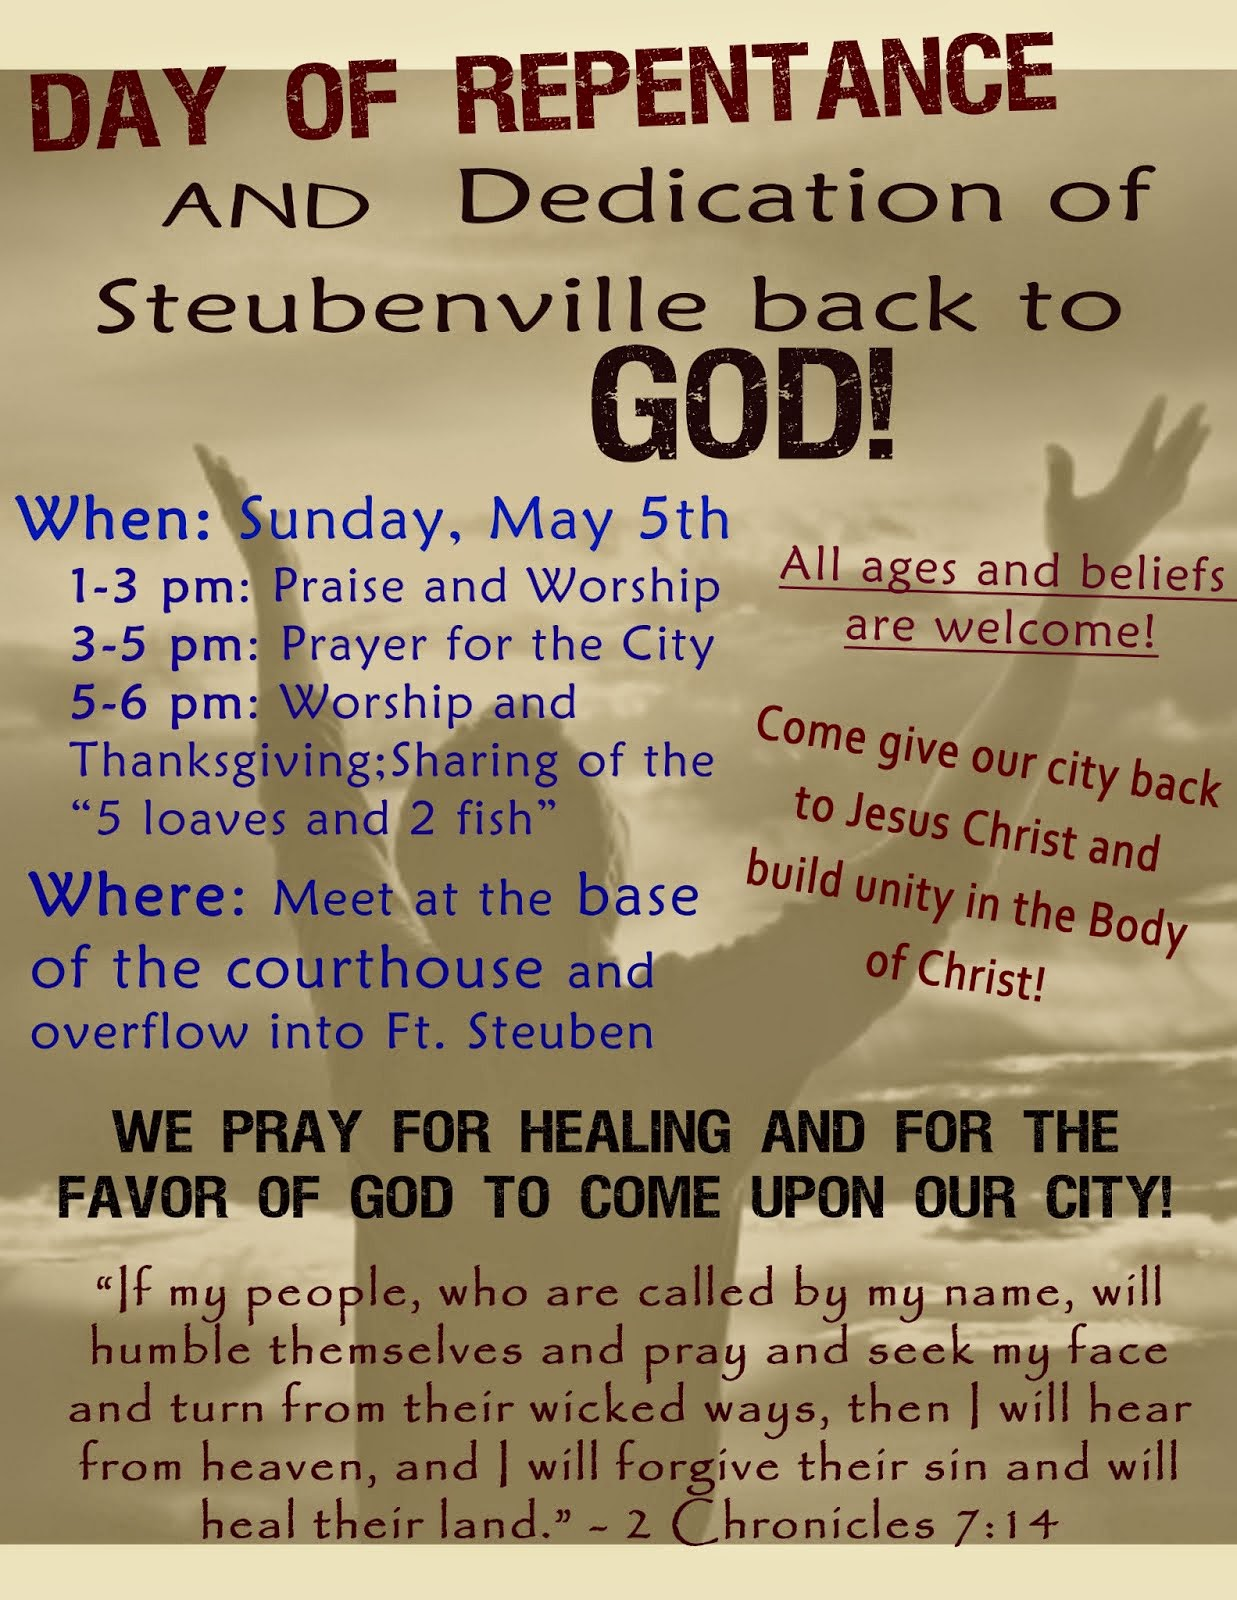 Steubenville Day of Repentance 2013